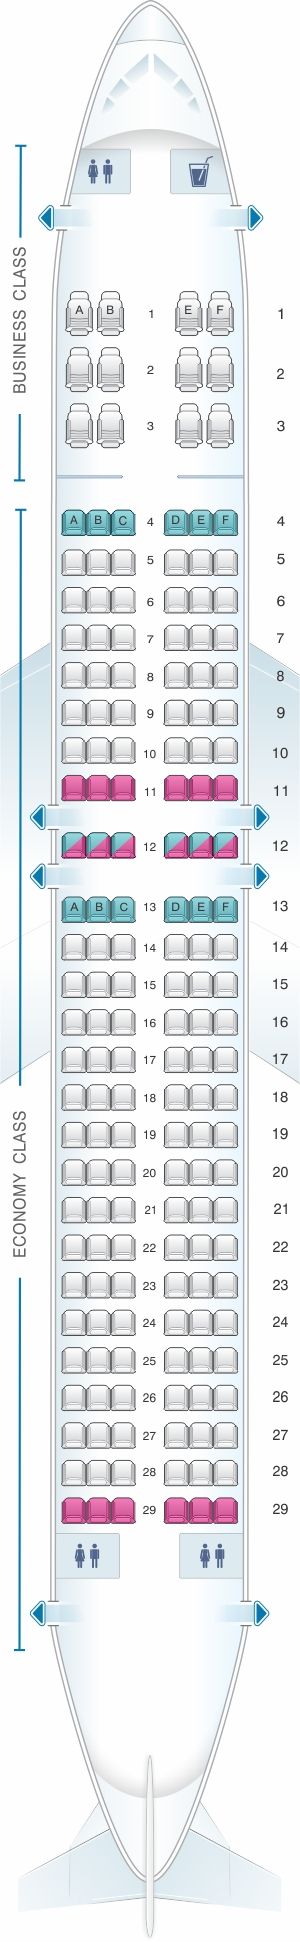 Seat map for SpiceJet Boeing B737 800 config.2